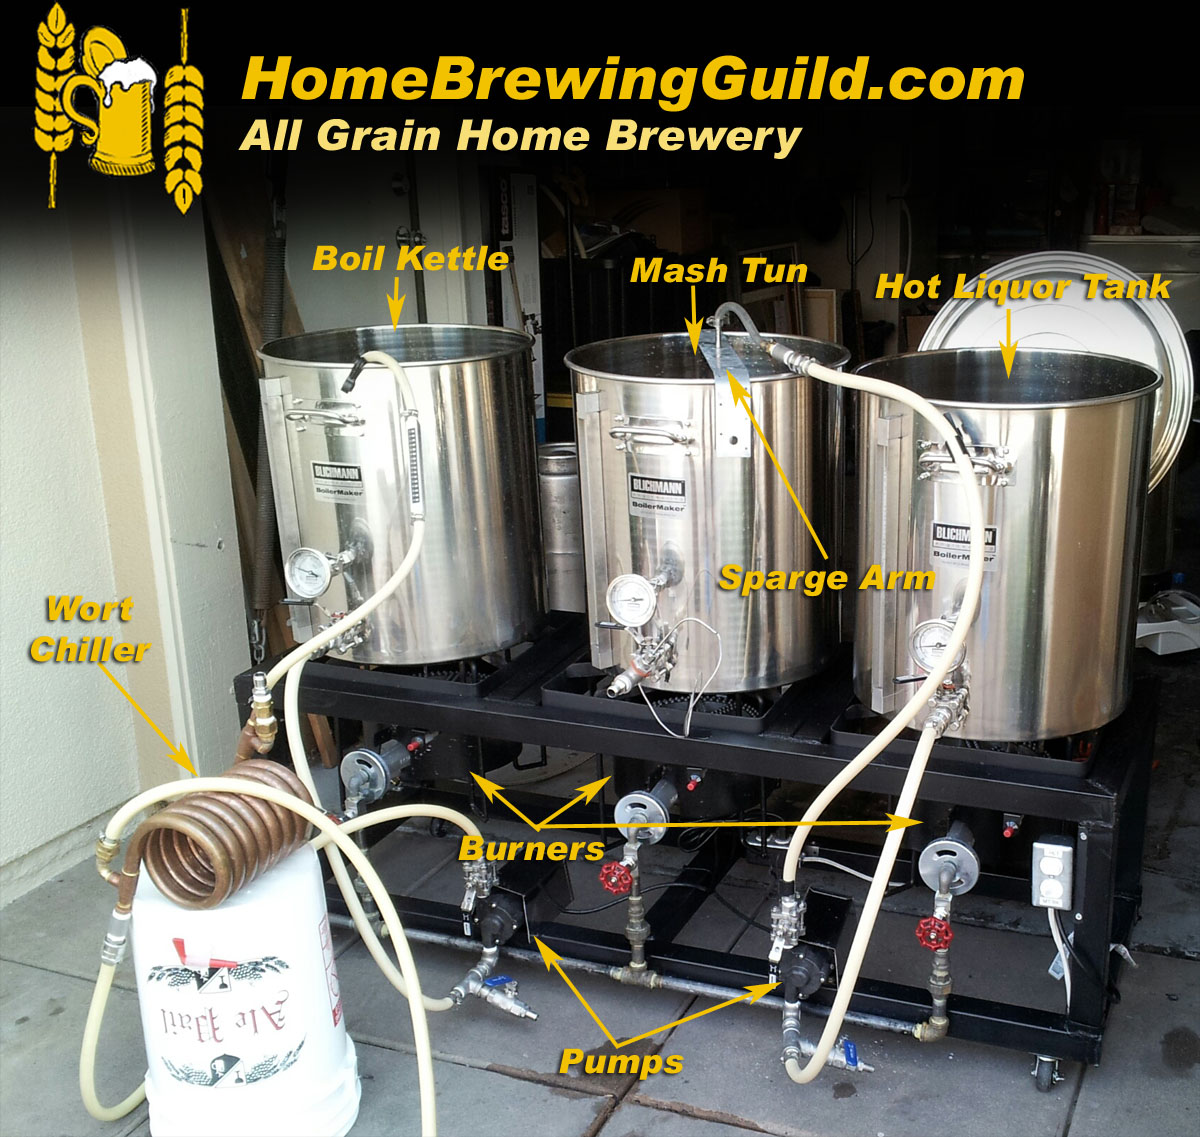 All Grain Home Brewery Configuration Image